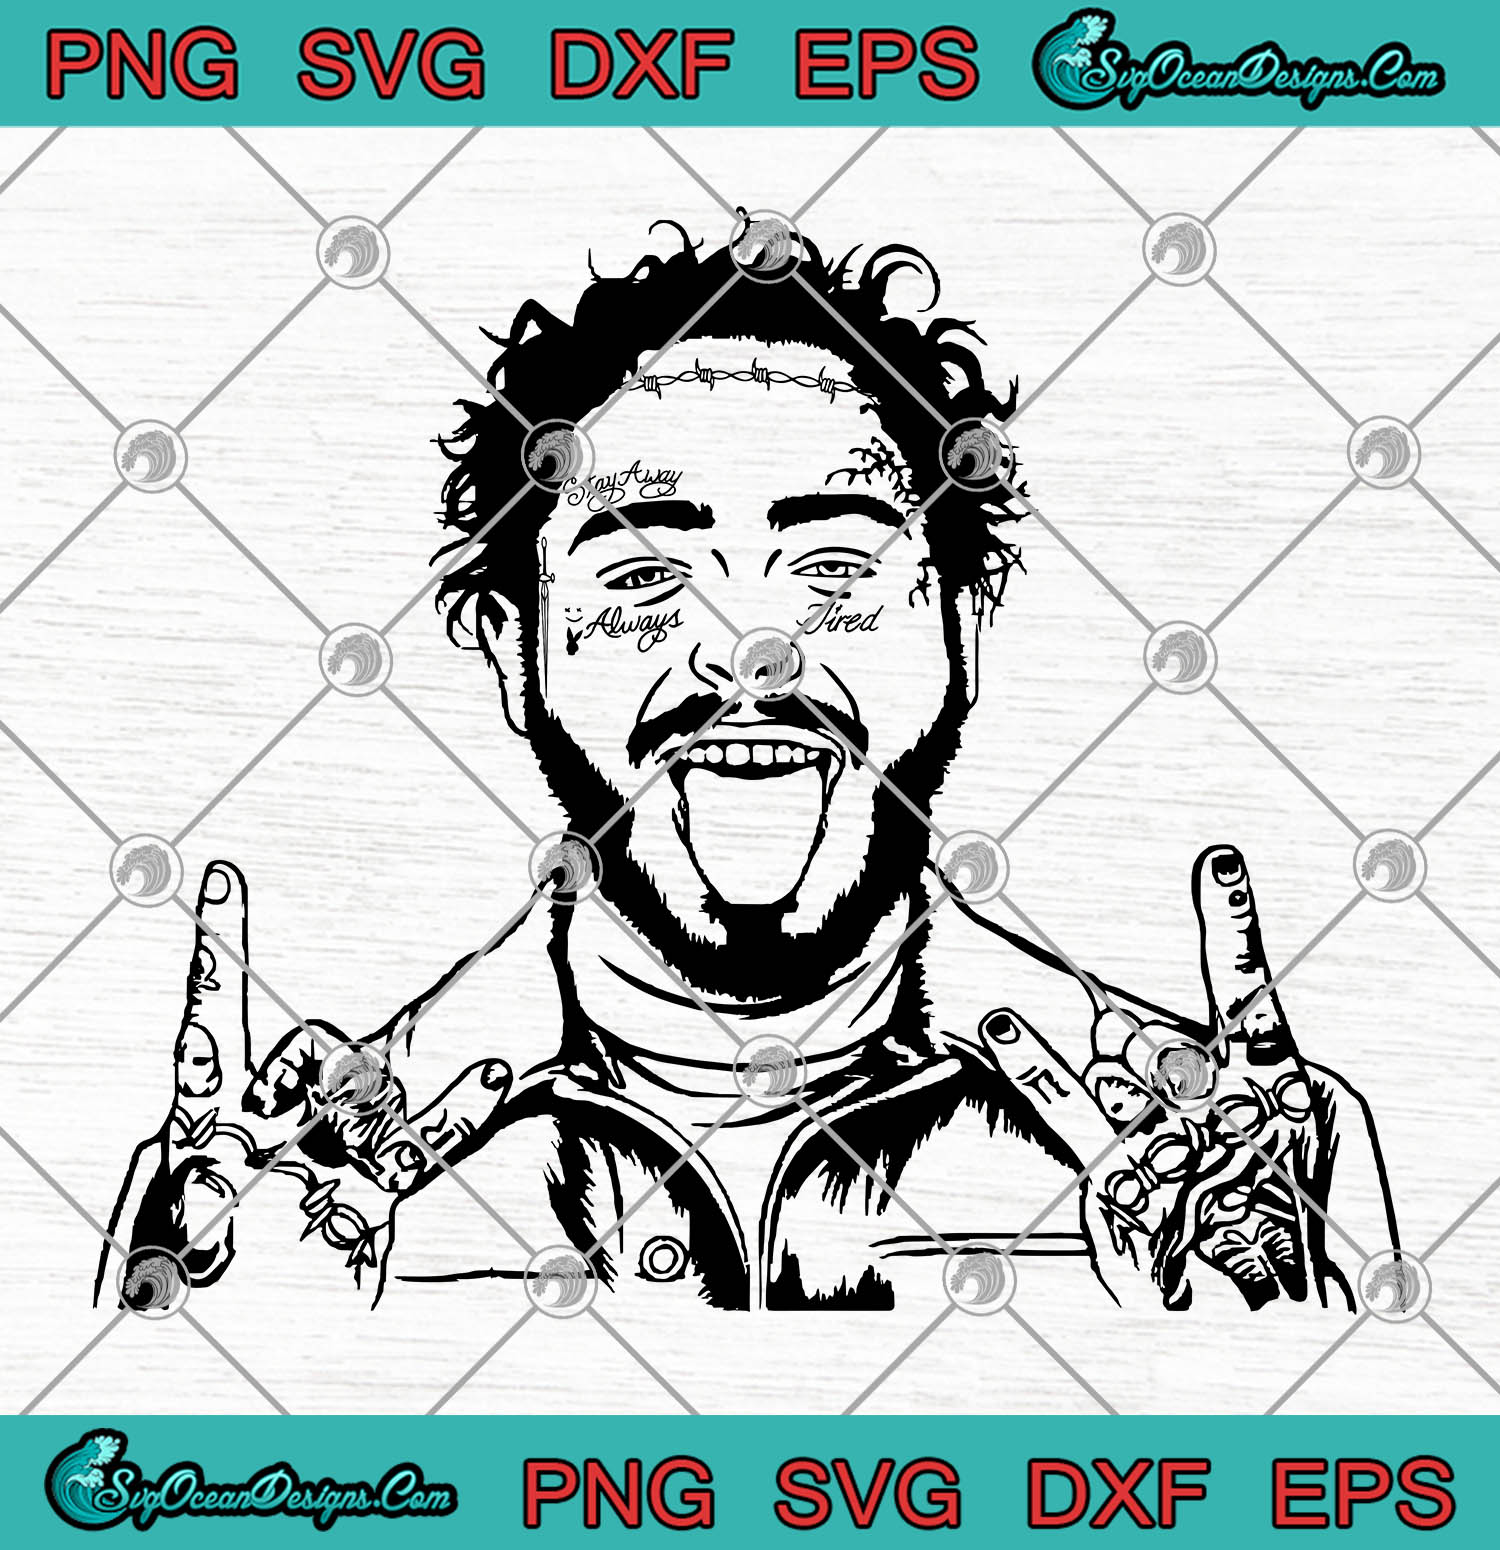 Post Malone Fant Vector Svg Png Eps Dxf Posty For President Post Malone Cutting File Cricut Silhouette Art Designs Digital Download